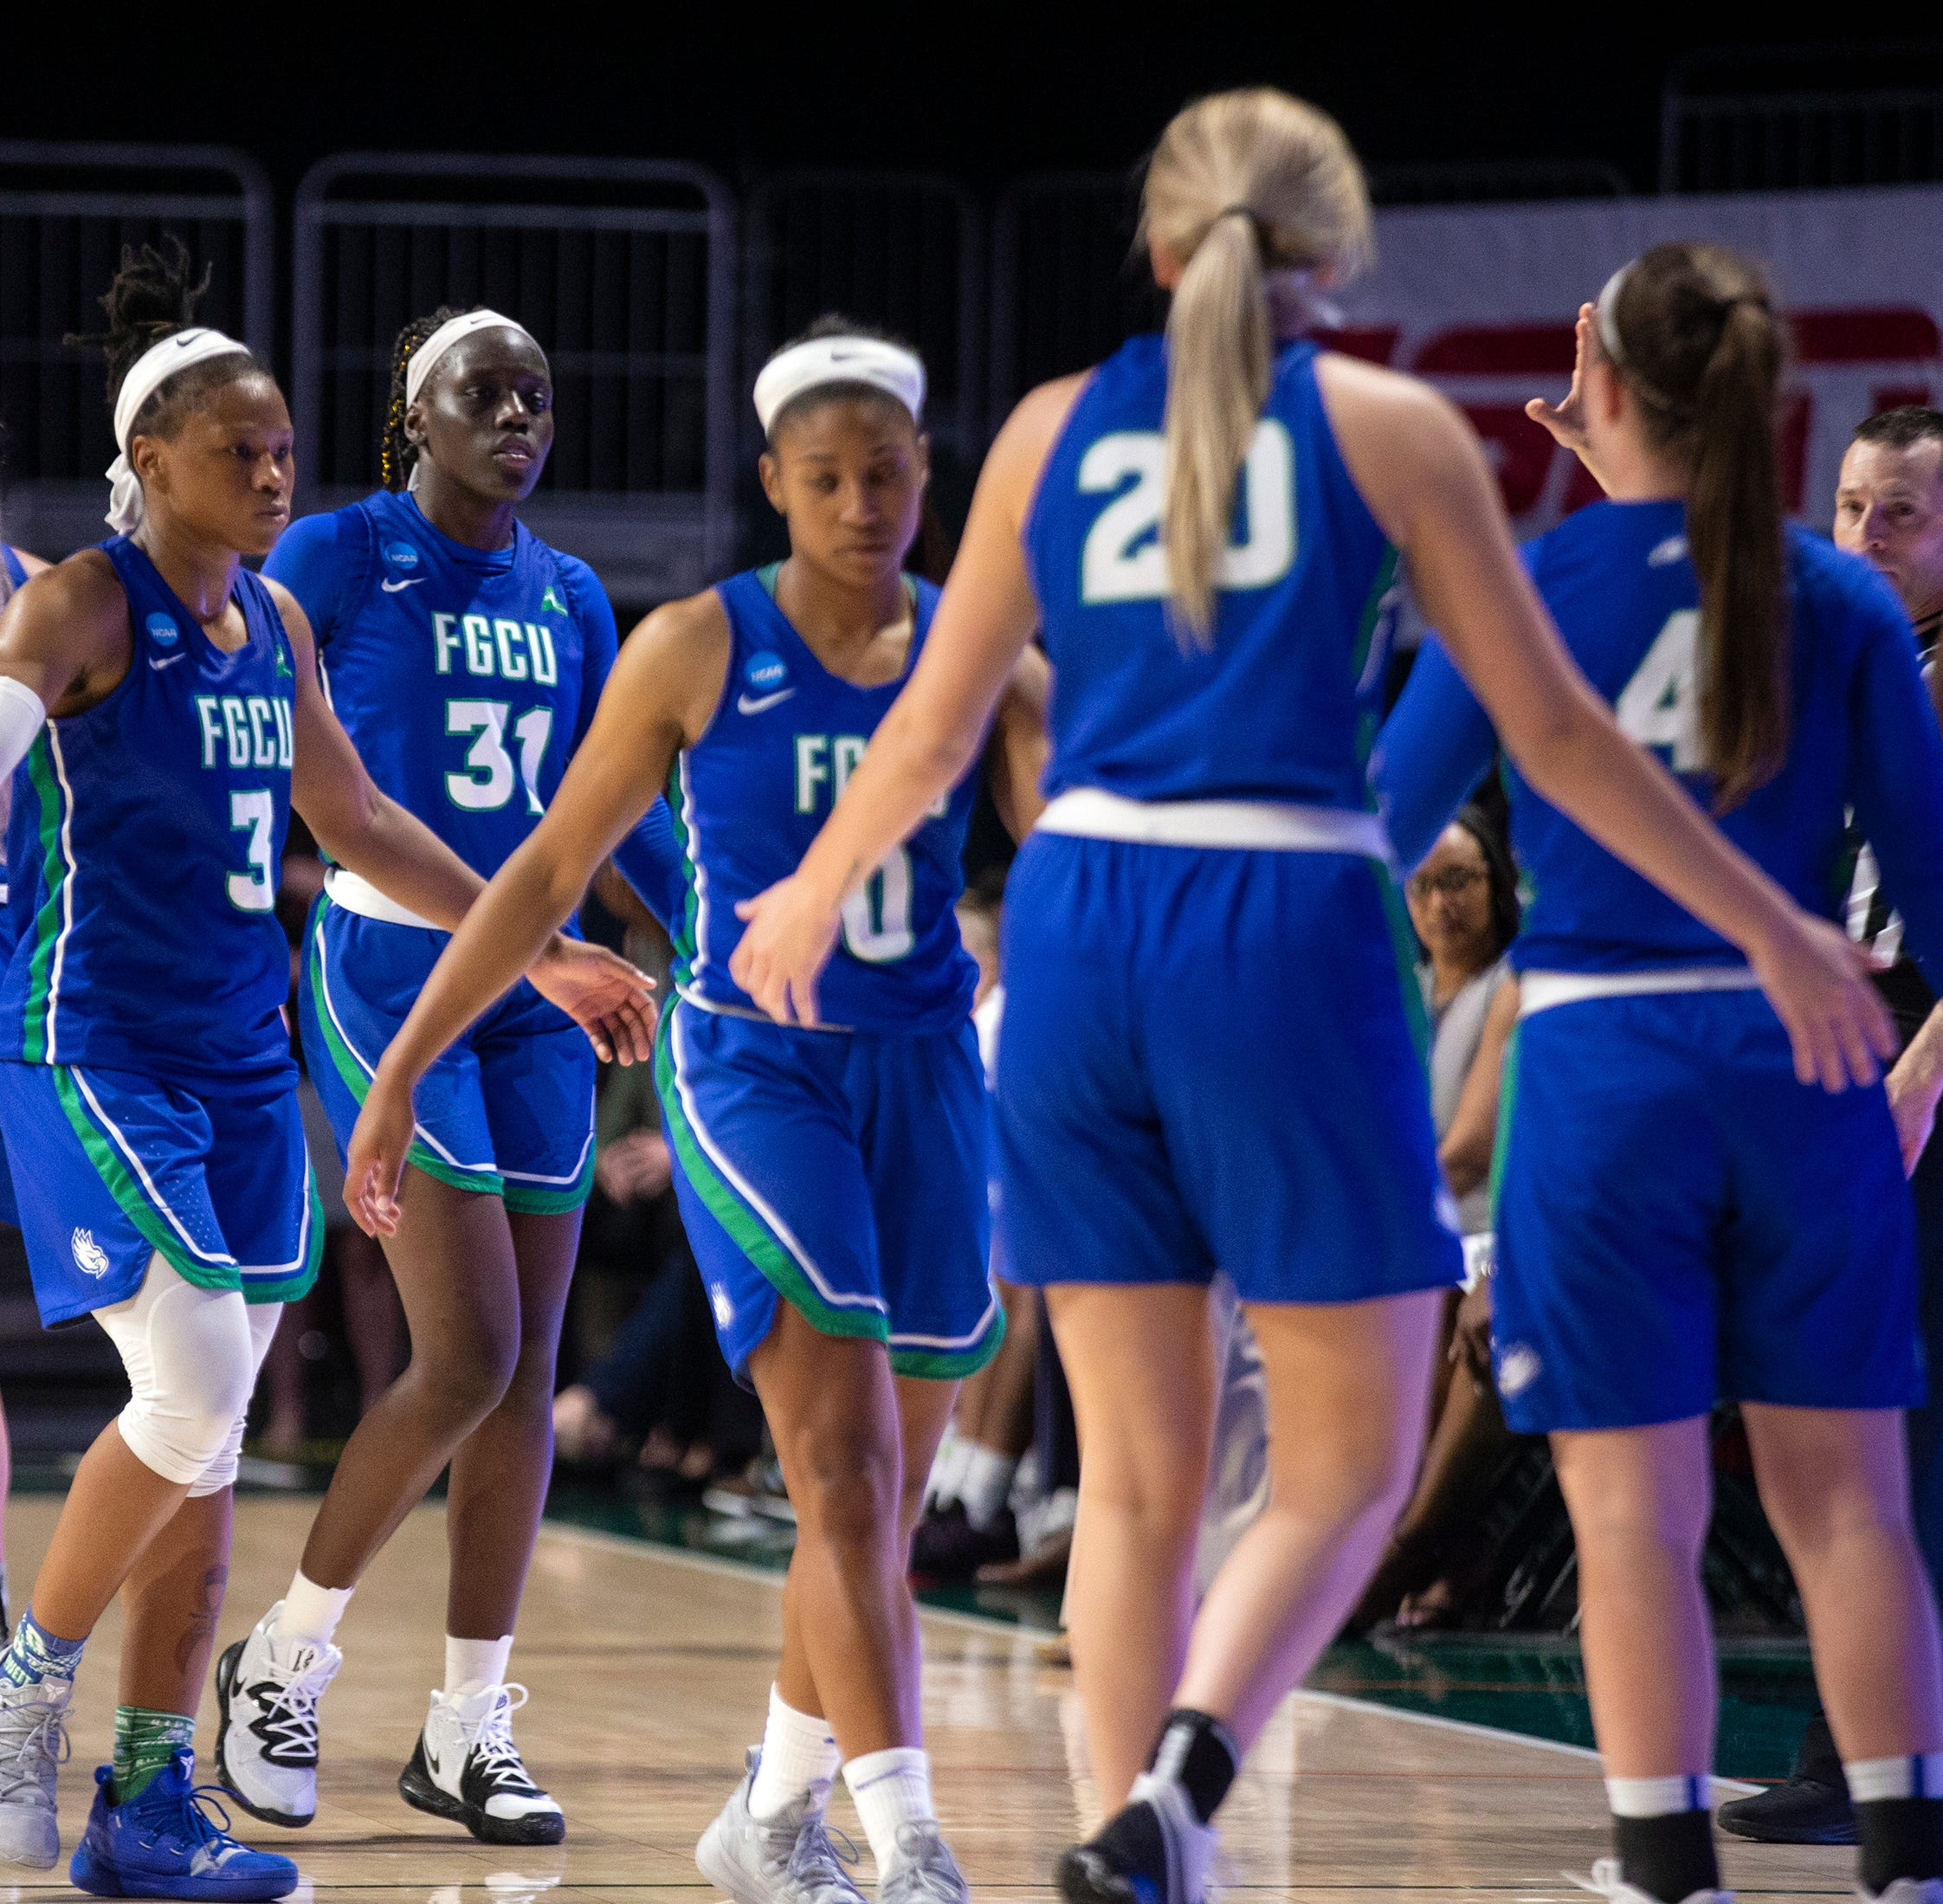 Basketball: Eagles women continue to gain respect after close defeat in NCAA tournament